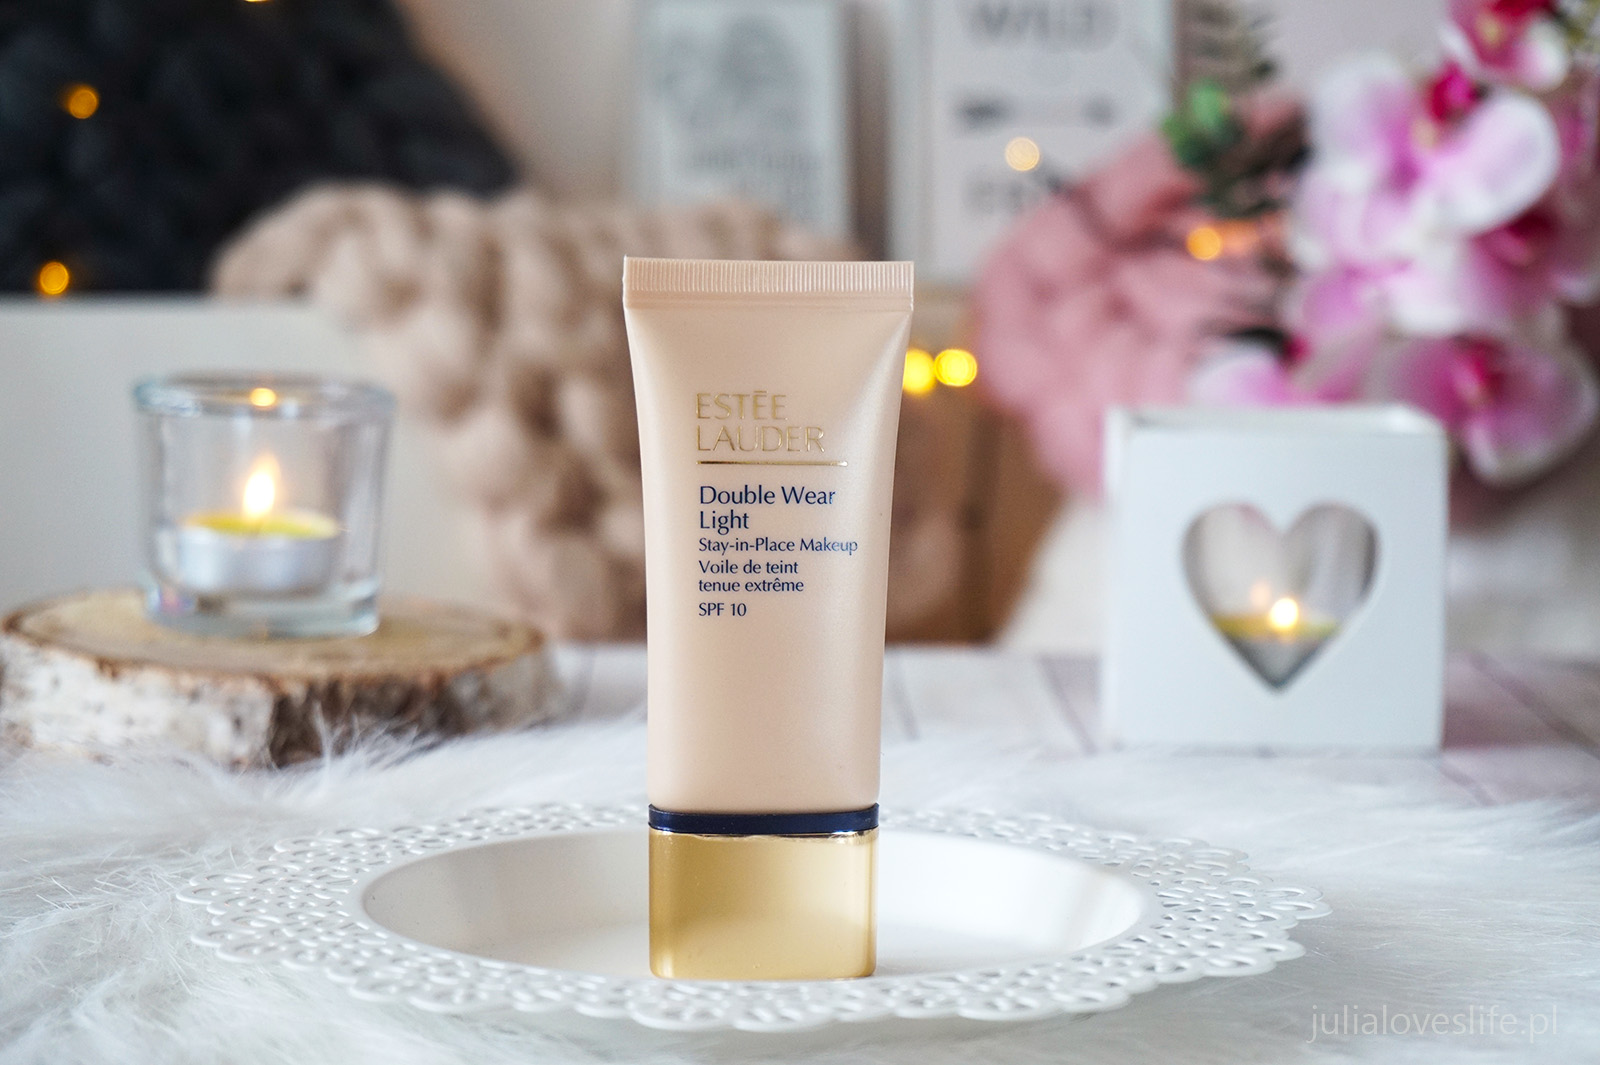 estee-lauder-double-wear-light-blog